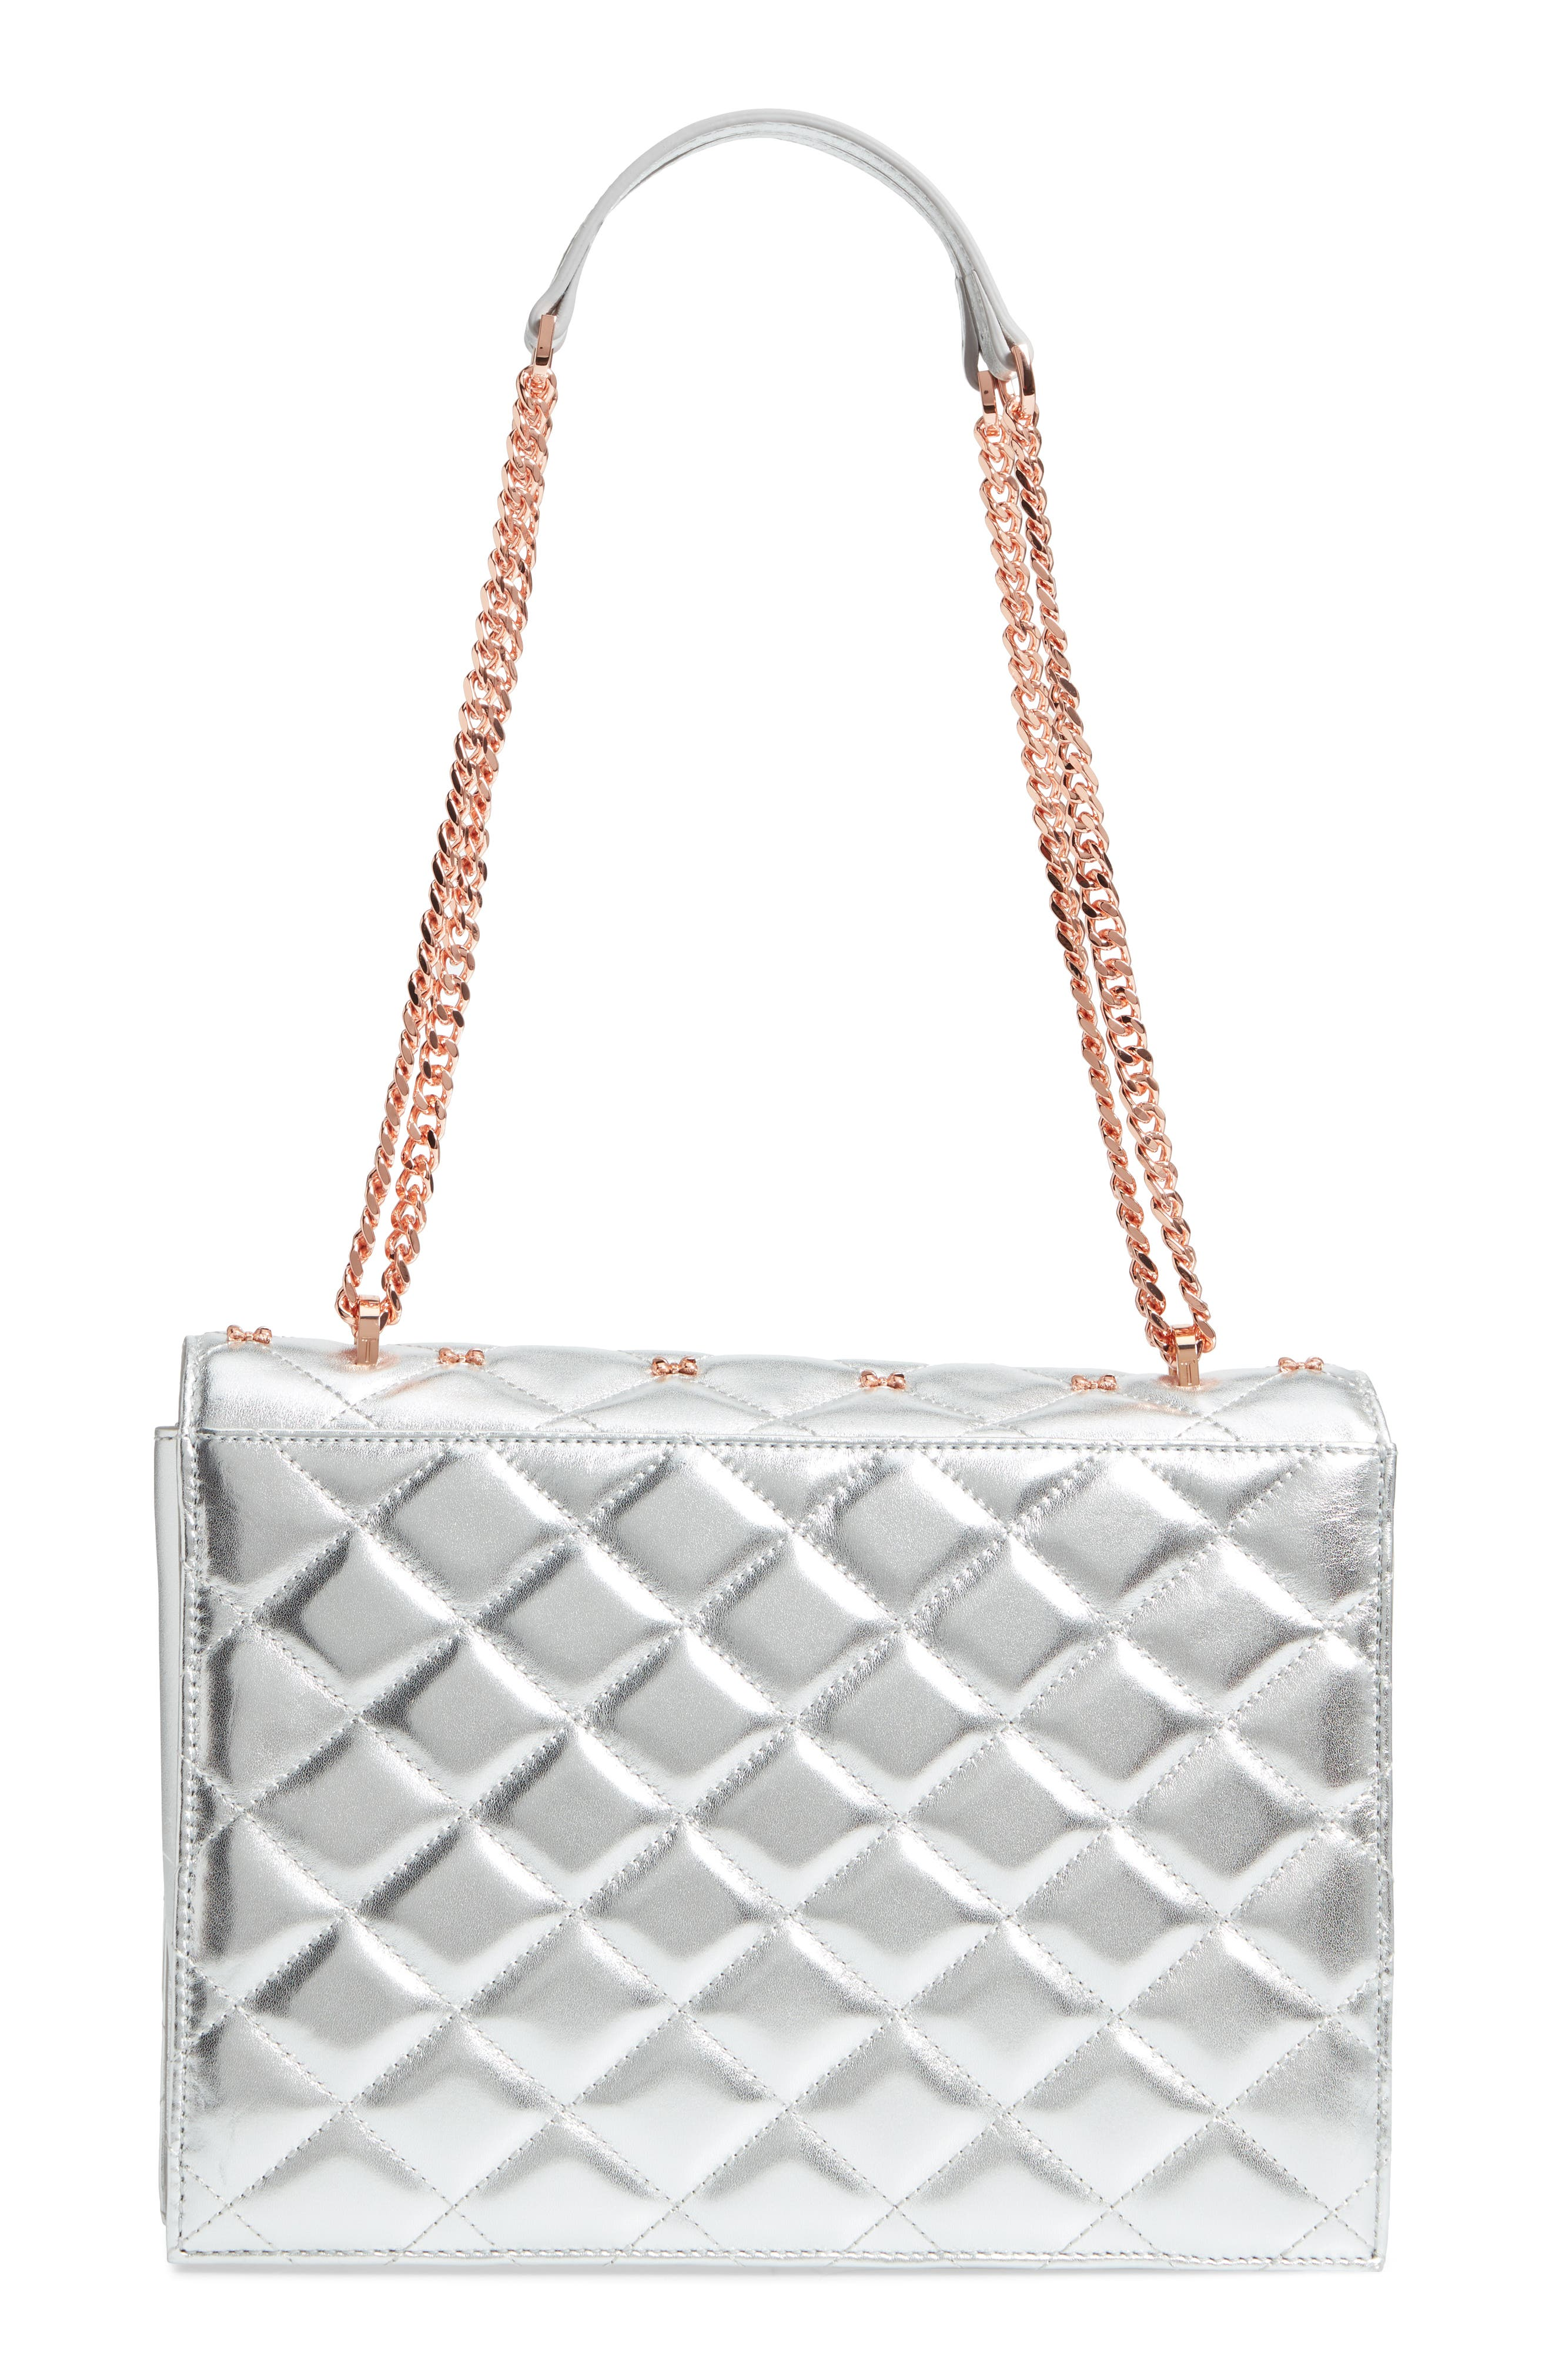 Bow Quilted Leather Shoulder Bag,                             Alternate thumbnail 3, color,                             SILVER